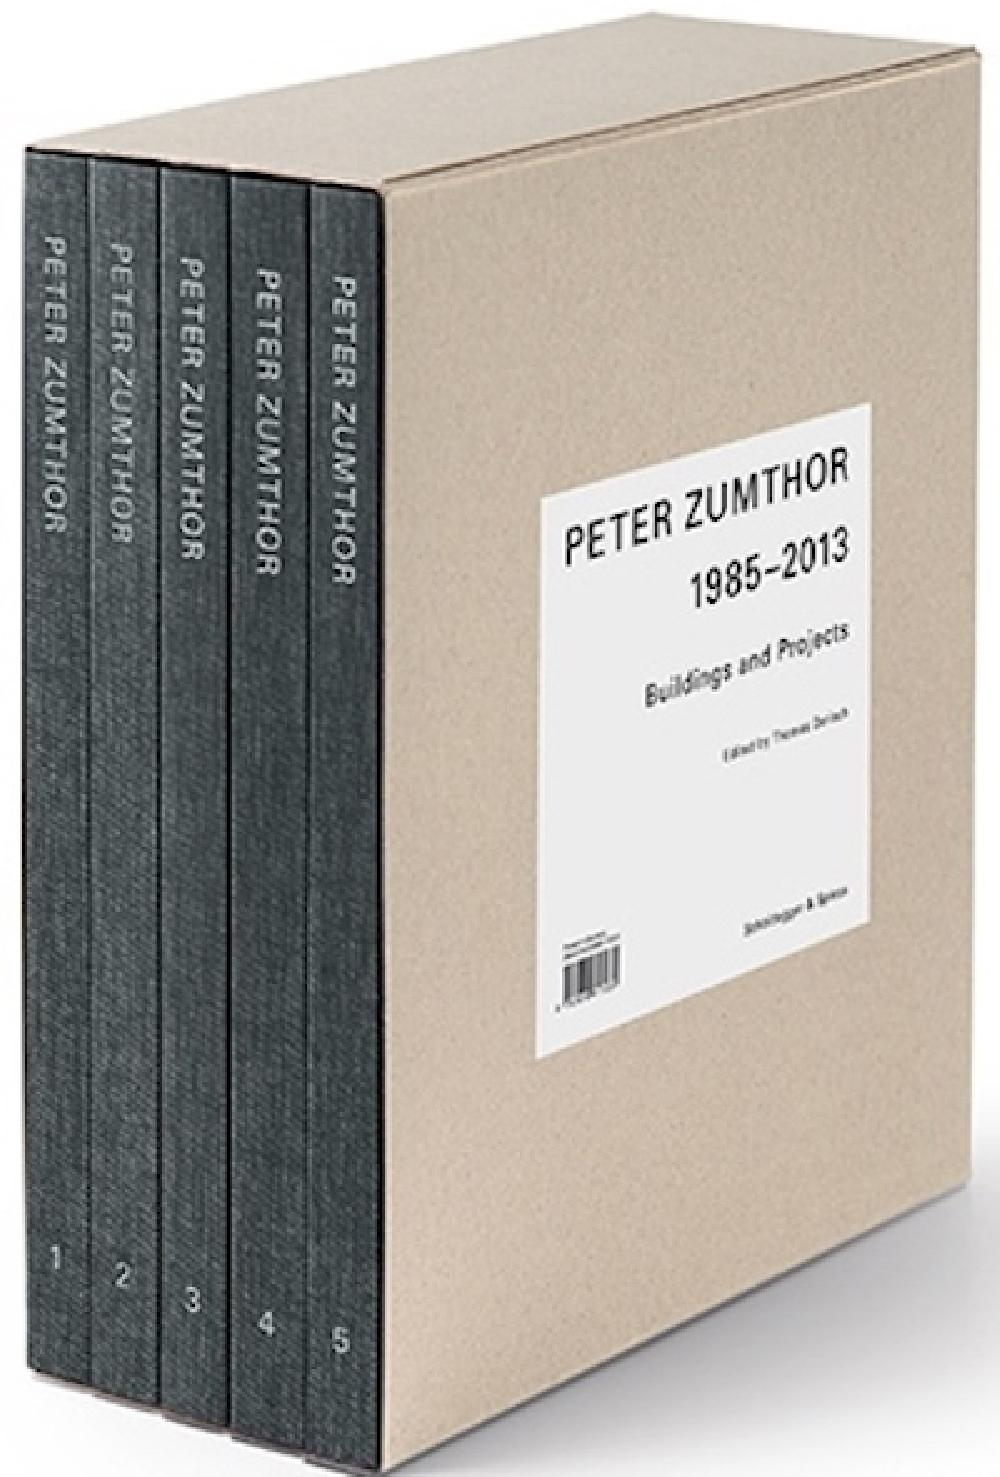 Peter Zumthor - Buildings and Projects - 1985-2013